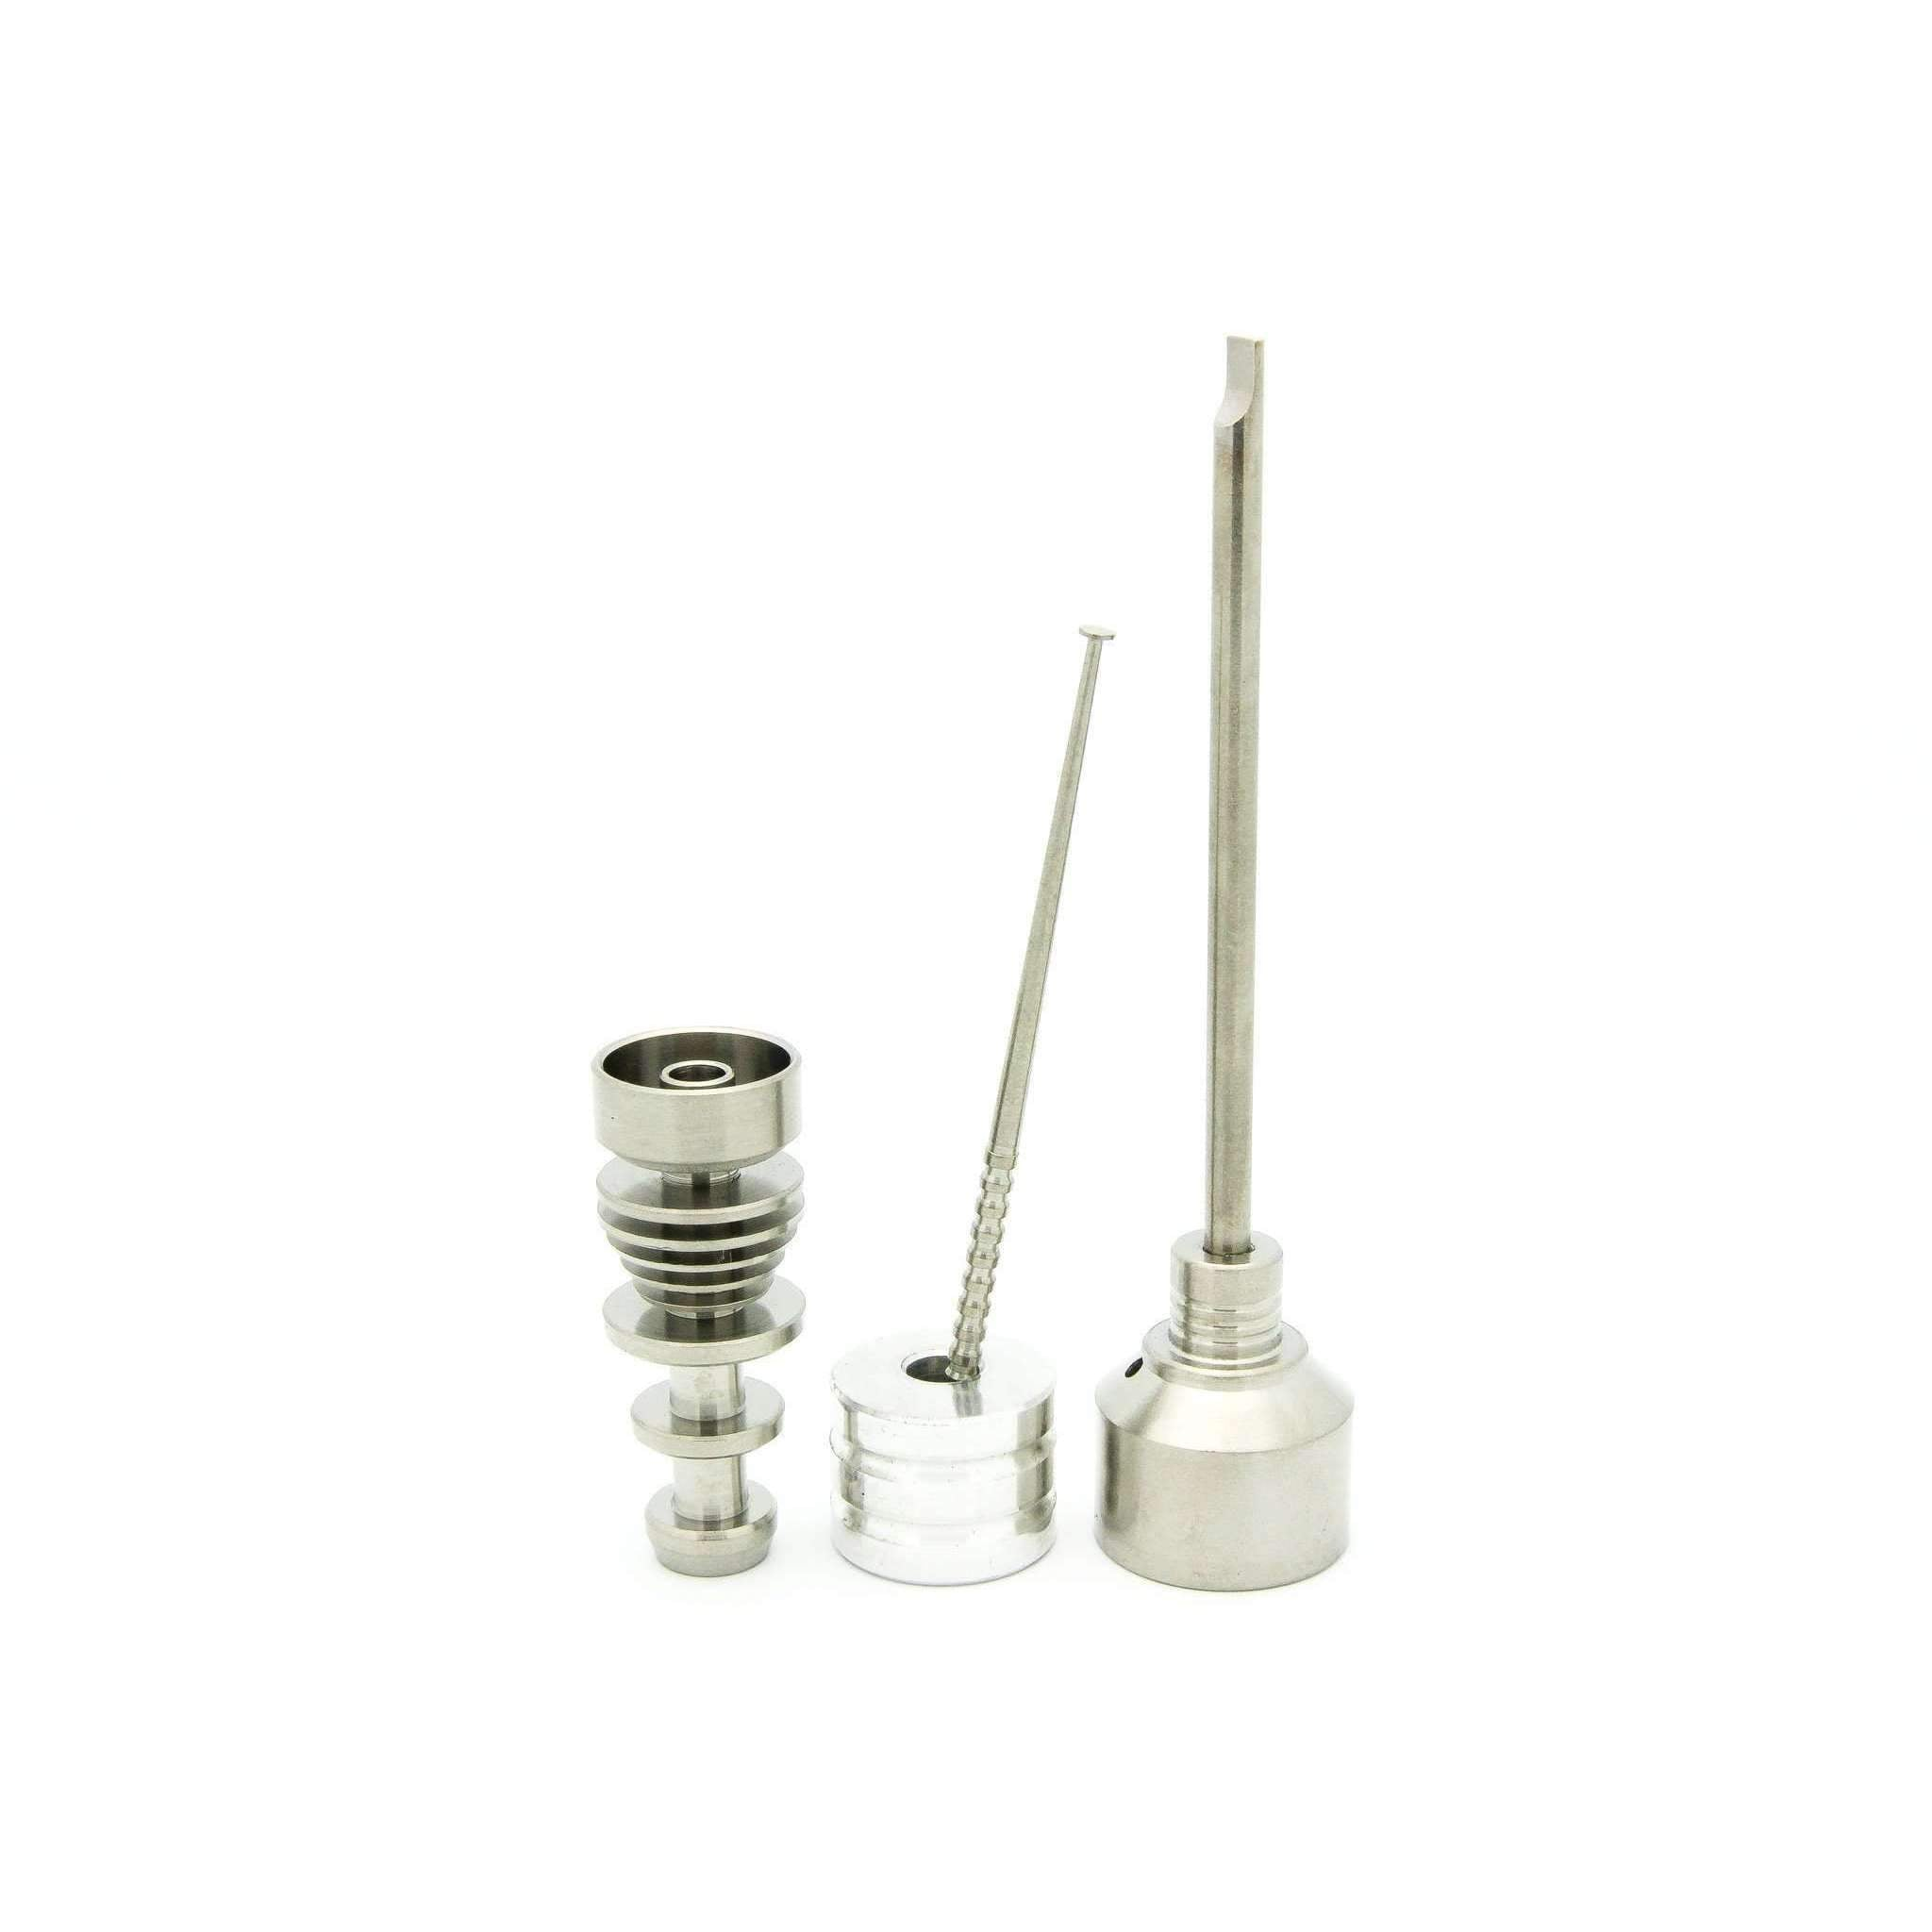 Piranha 14mm & 18mm Domeless Titanium Nail Male Joint (Complete Kit)